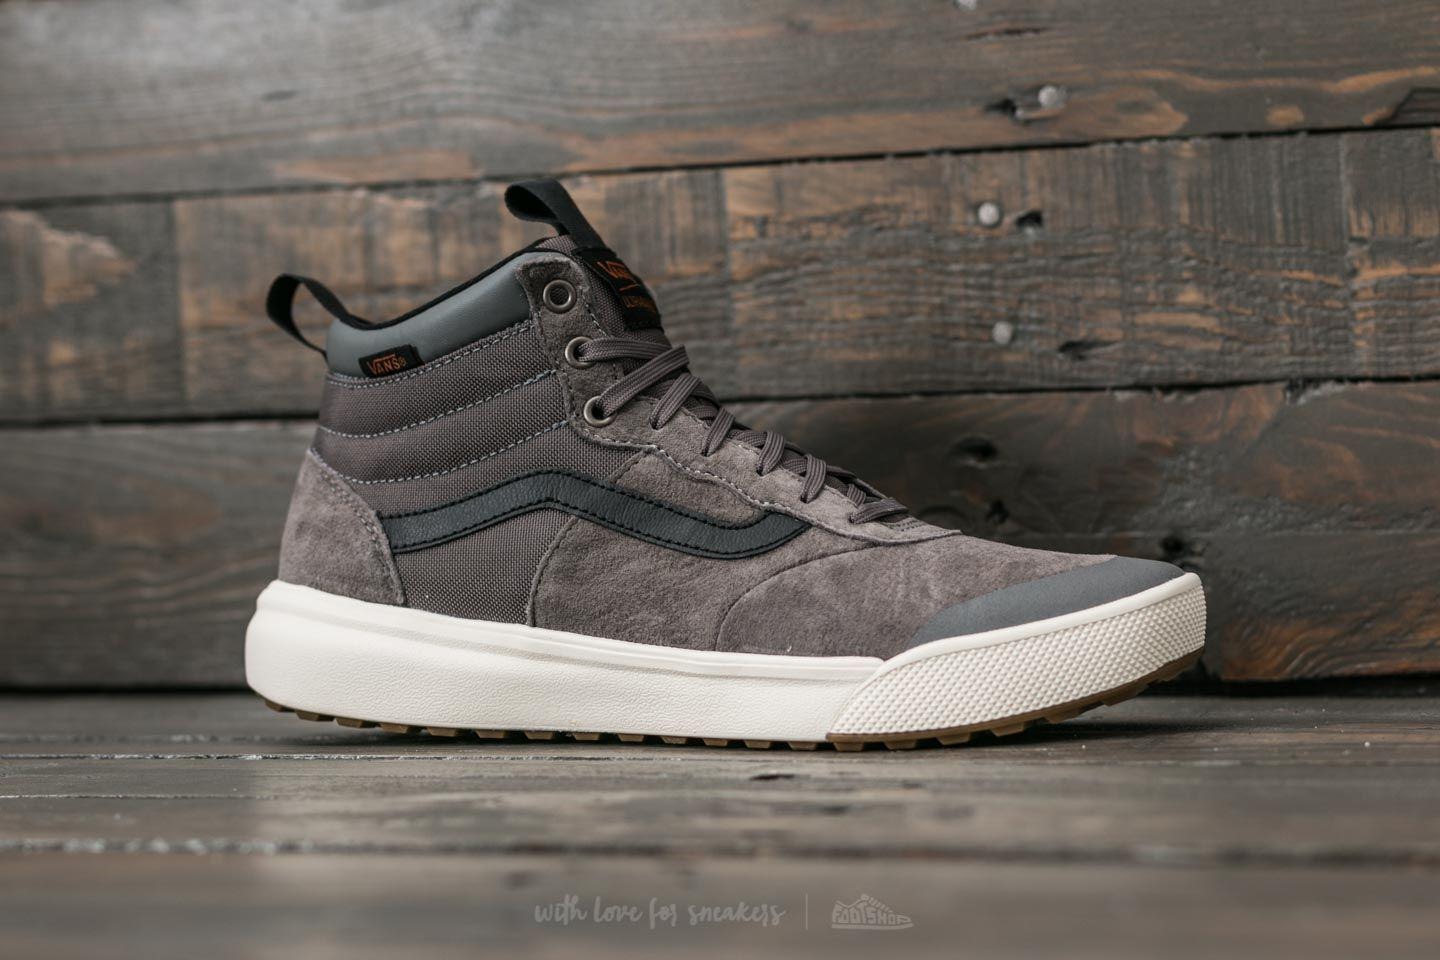 Lyst - Vans Ultrarange Hi (mte) Pewter for Men 835227871